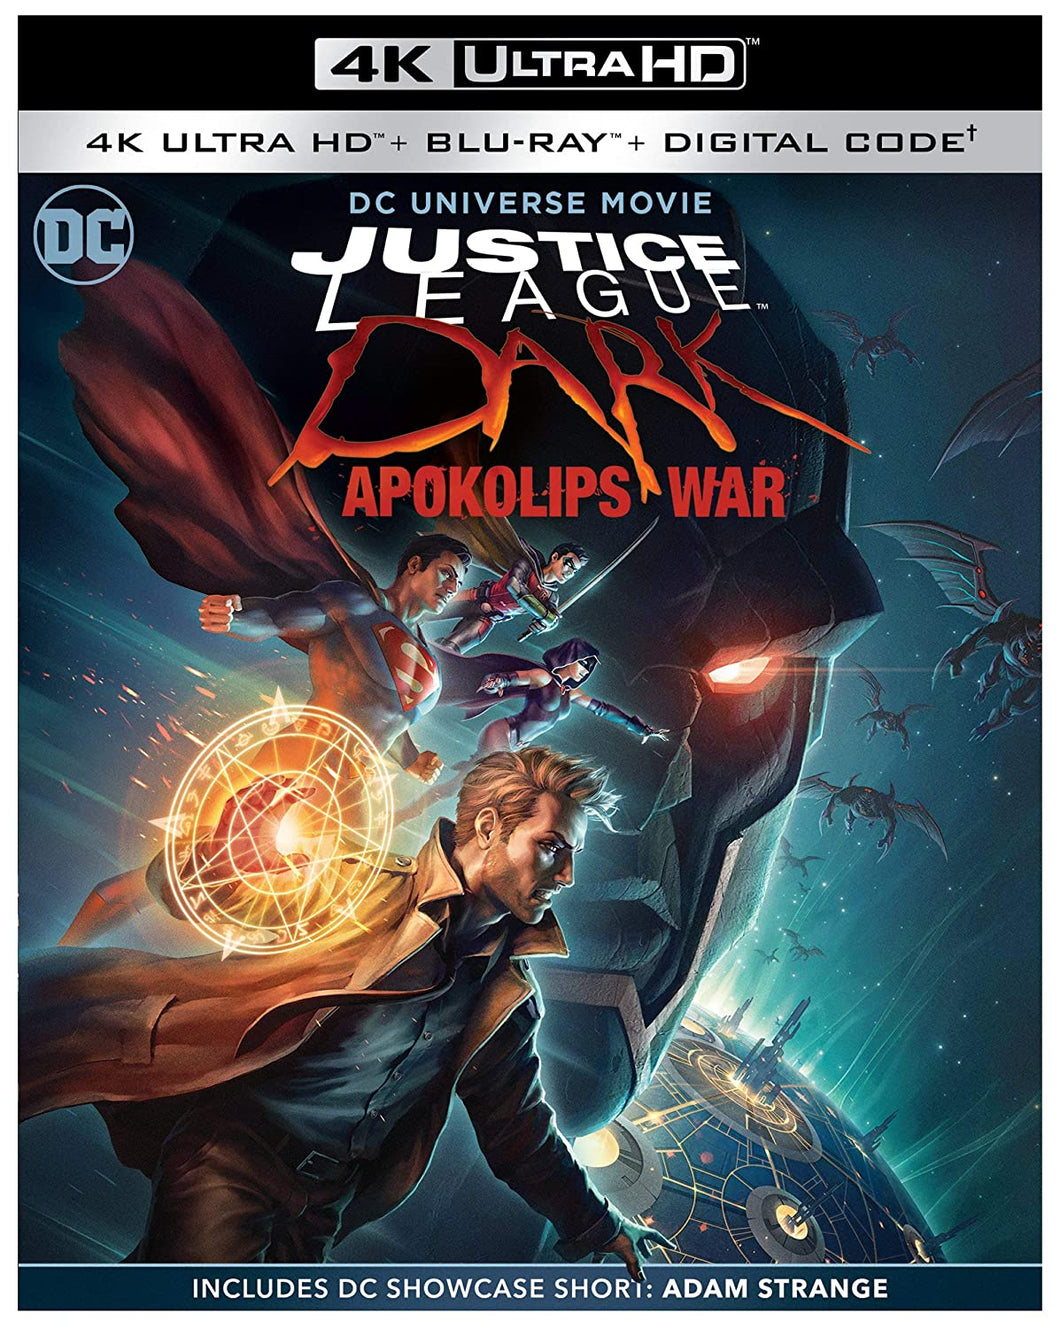 JUSTICE LEAGUE DARK: APOKOLIPS WAR 4K ULTRA HD + BLU-RAY + DIGITAL